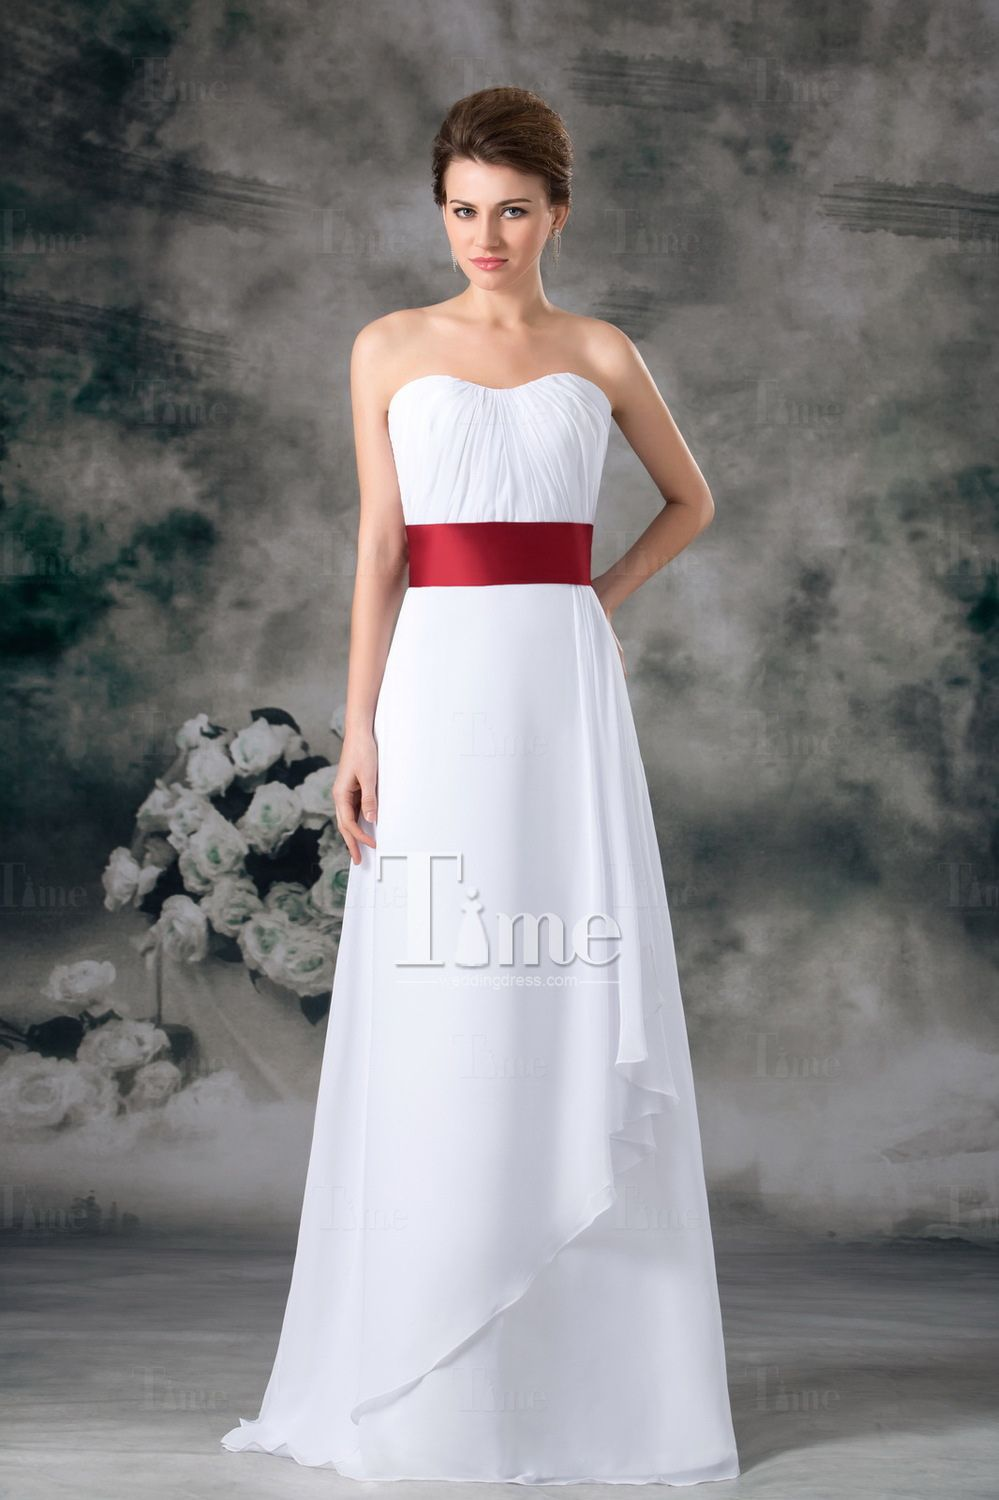 77+ Wedding Dress with Red Belt - Best Wedding Dress for Pear Shaped ...